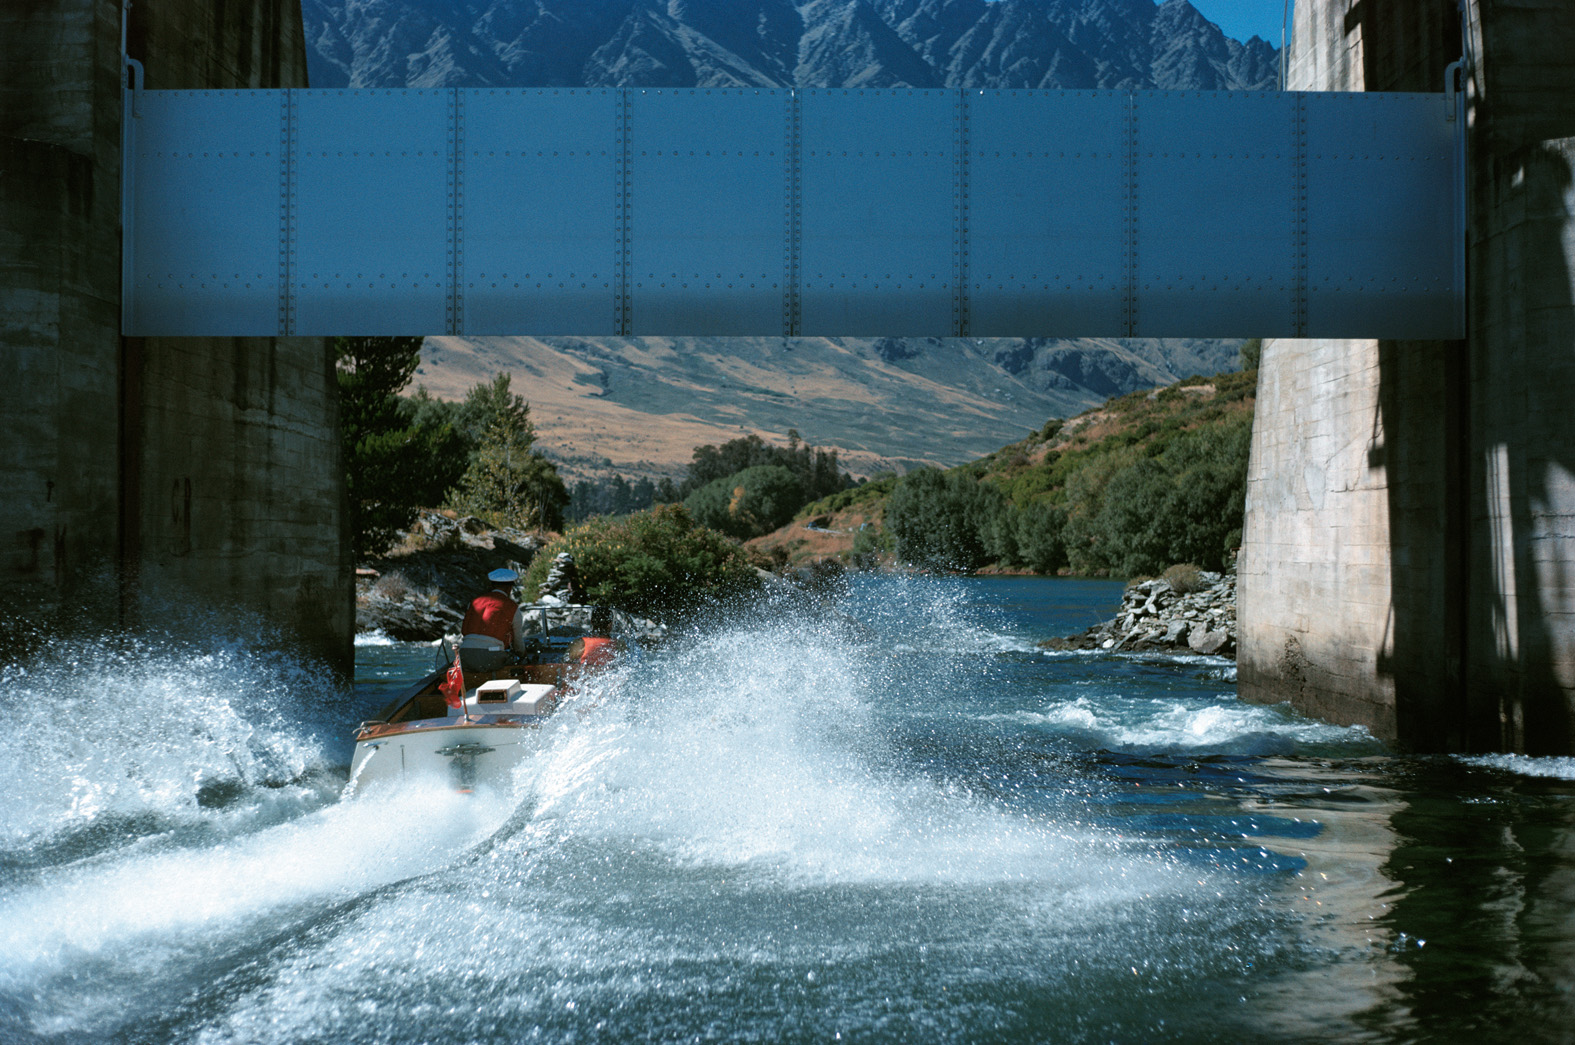 KJet Kawarau River Bridge Dam